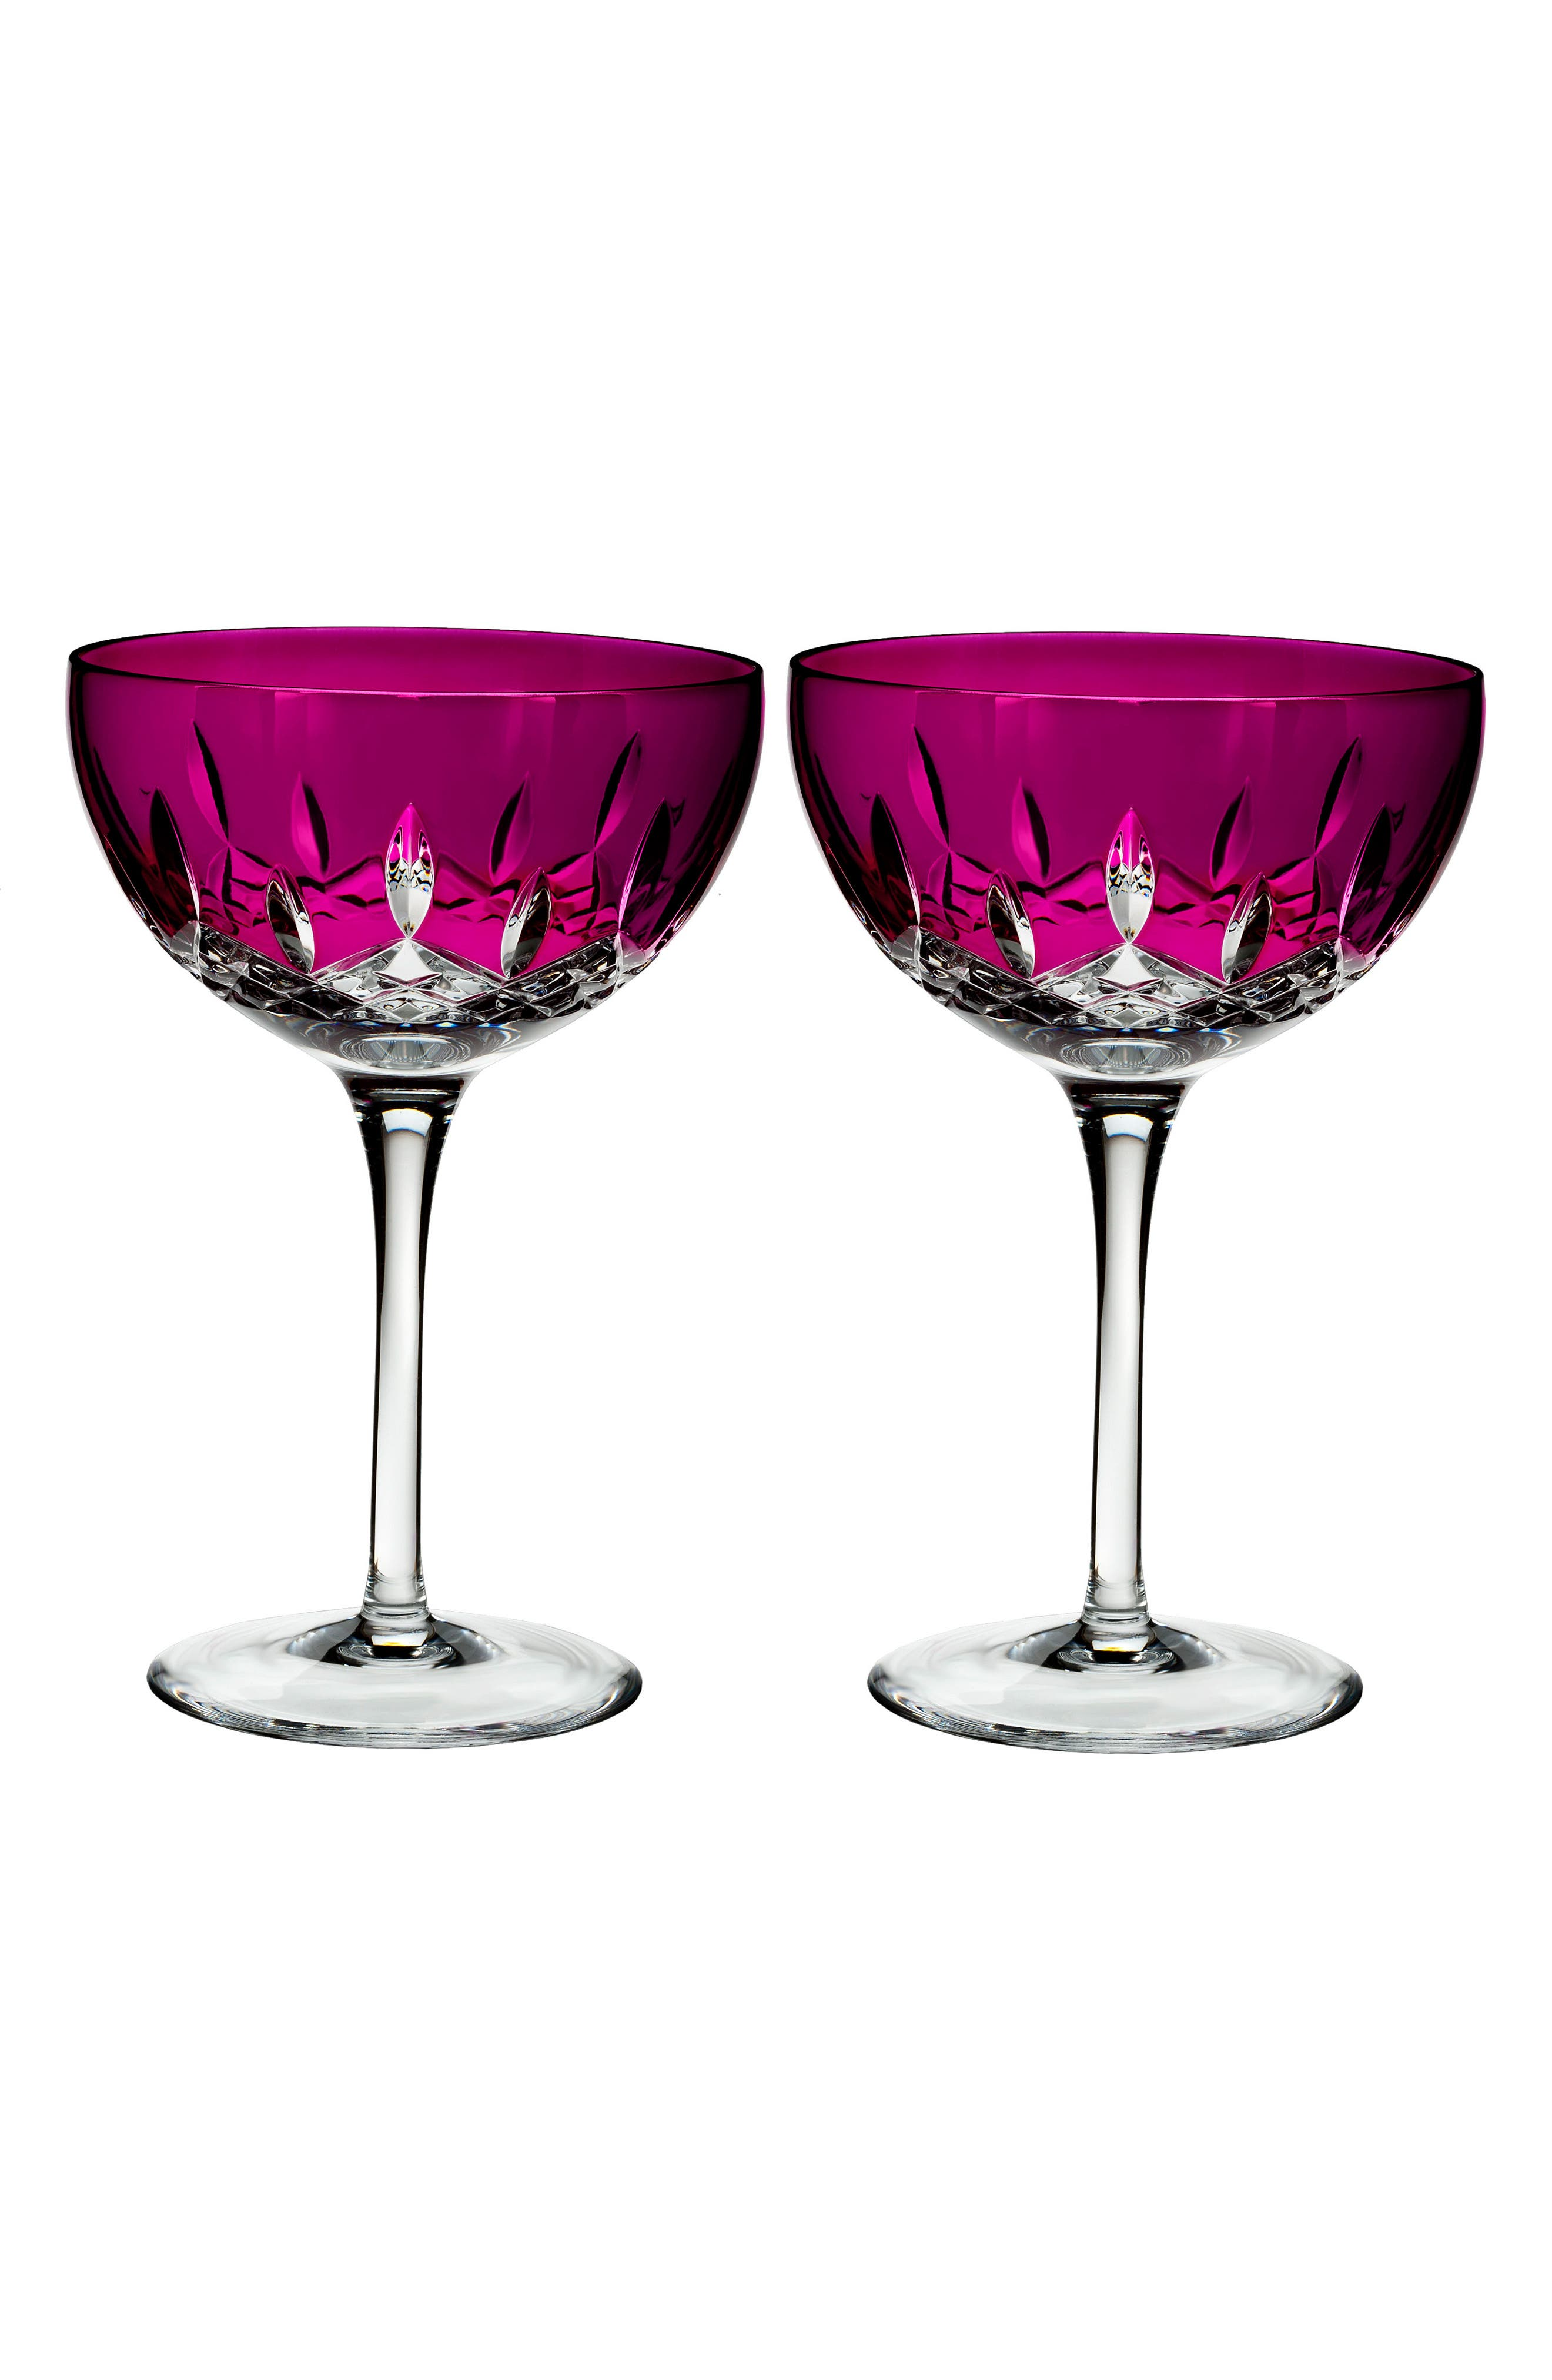 Waterford Lismore Pops Set of 2 Pink Lead Crystal Cocktail Glasses